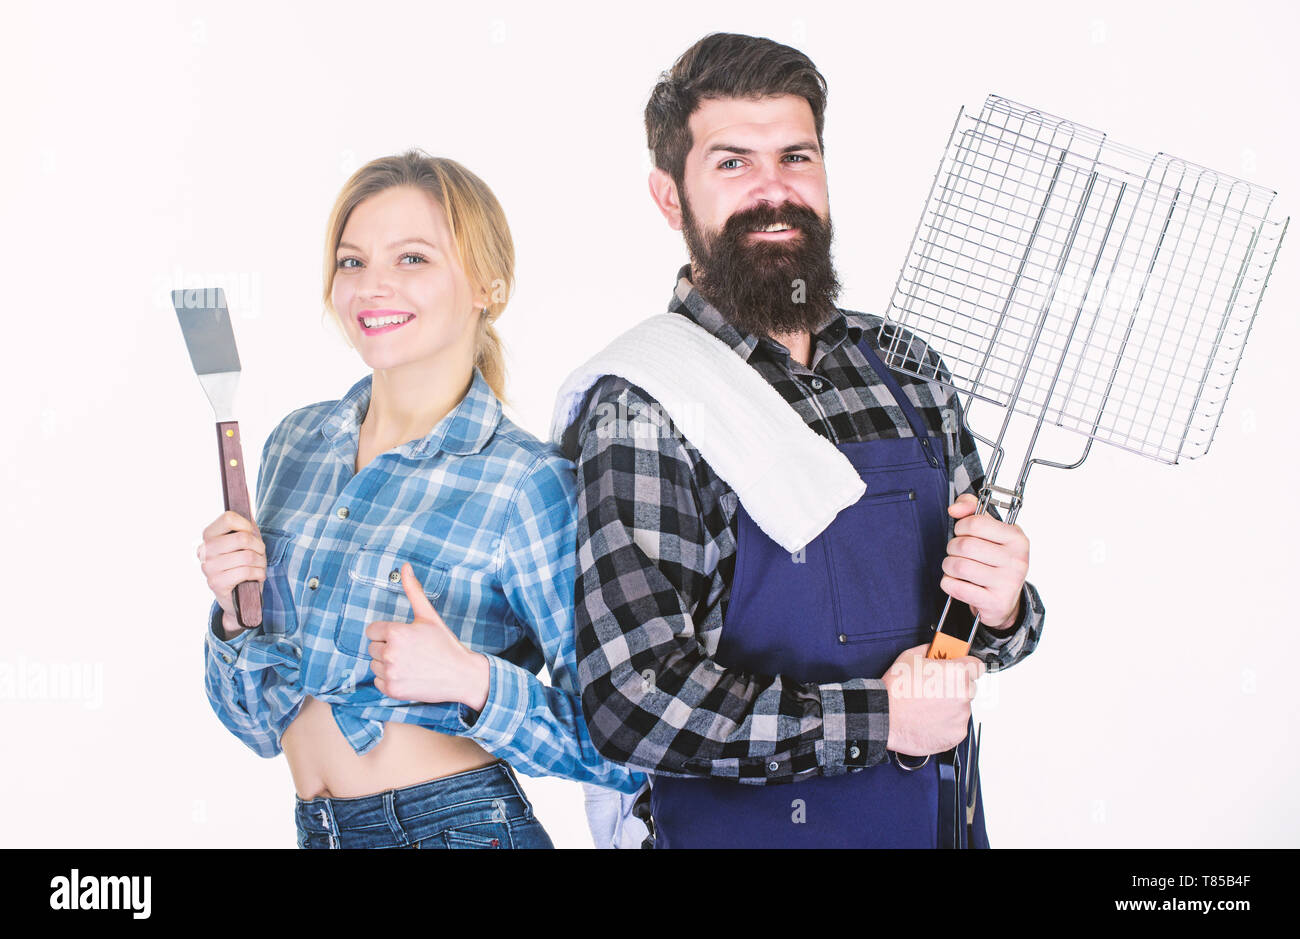 Tools for roasting meat. Couple in love hold kitchen utensils. Family weekend. Picnic barbecue. food cooking recipe. Man bearded hipster and girl. Preparation. Spending great time with friends. - Stock Image